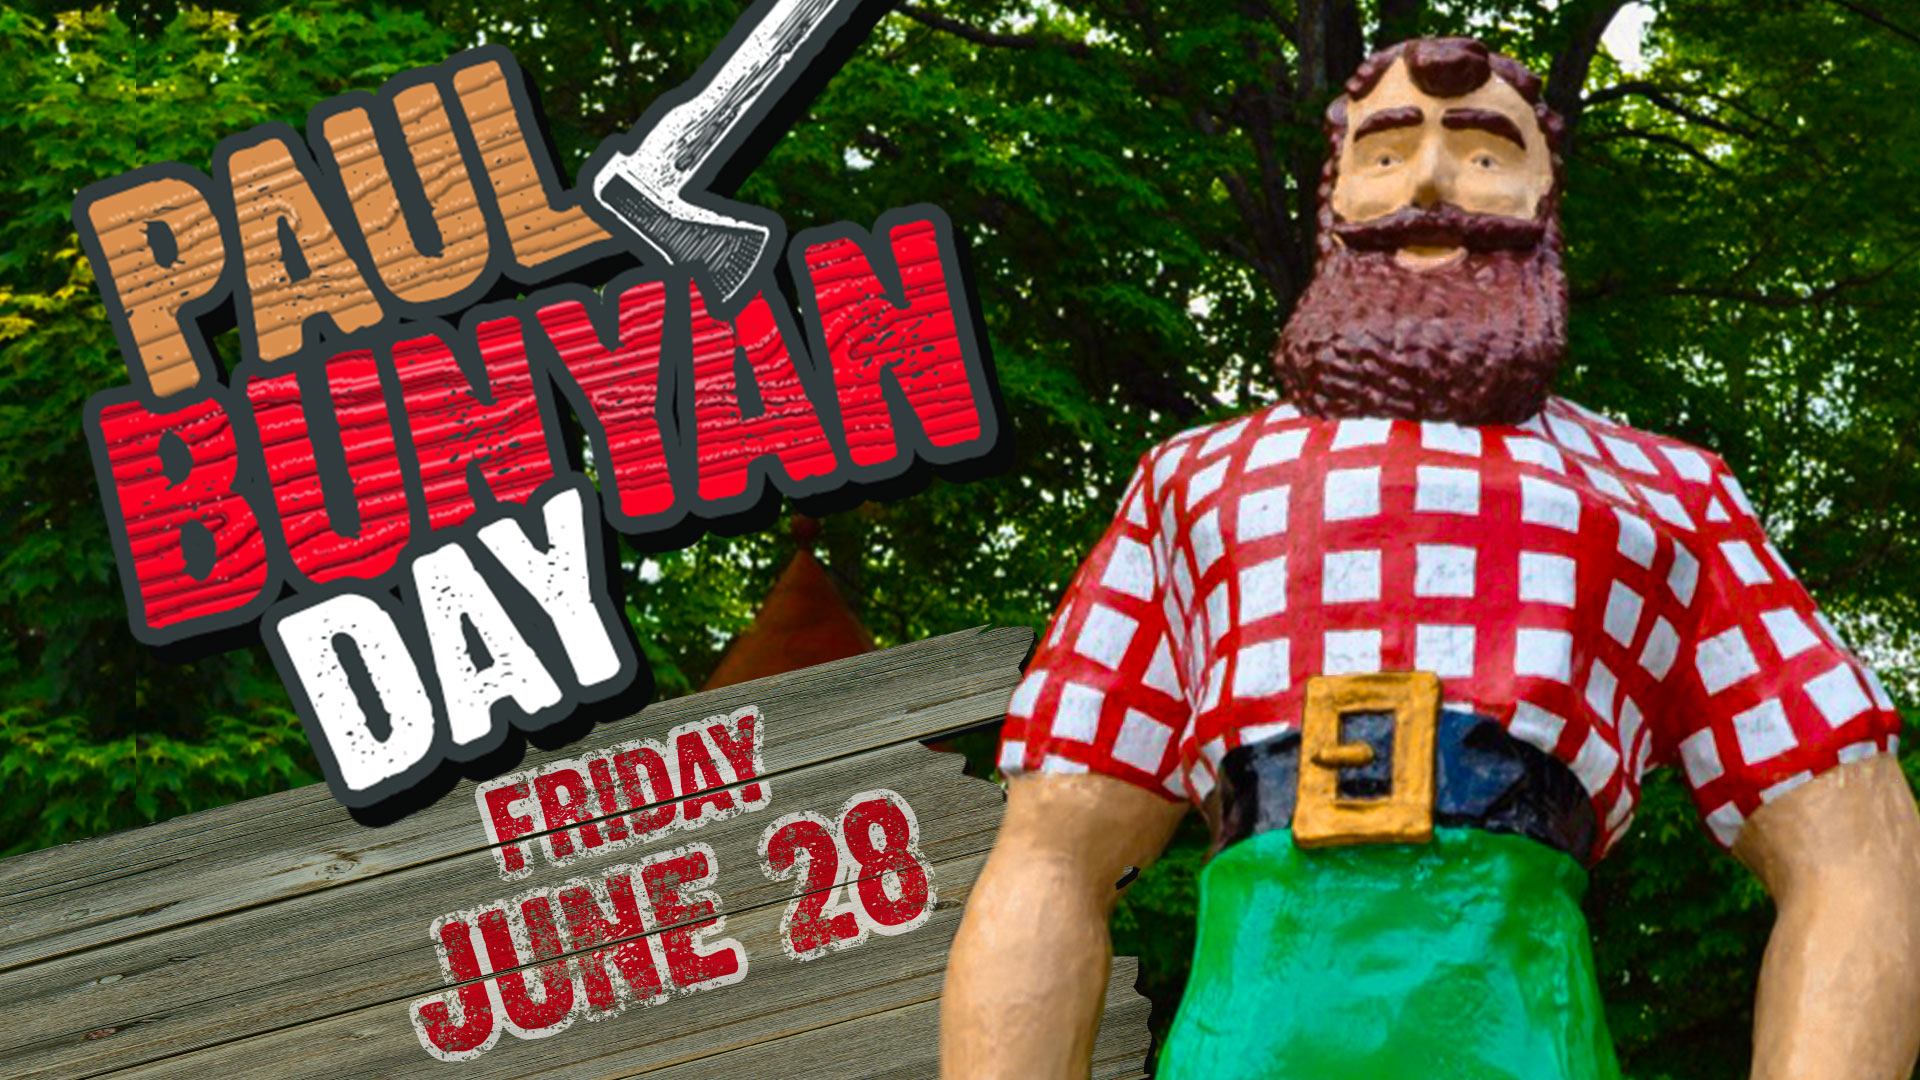 Paul Bunyan day Friday June 28 written next to the Paul bunny statue at water safari